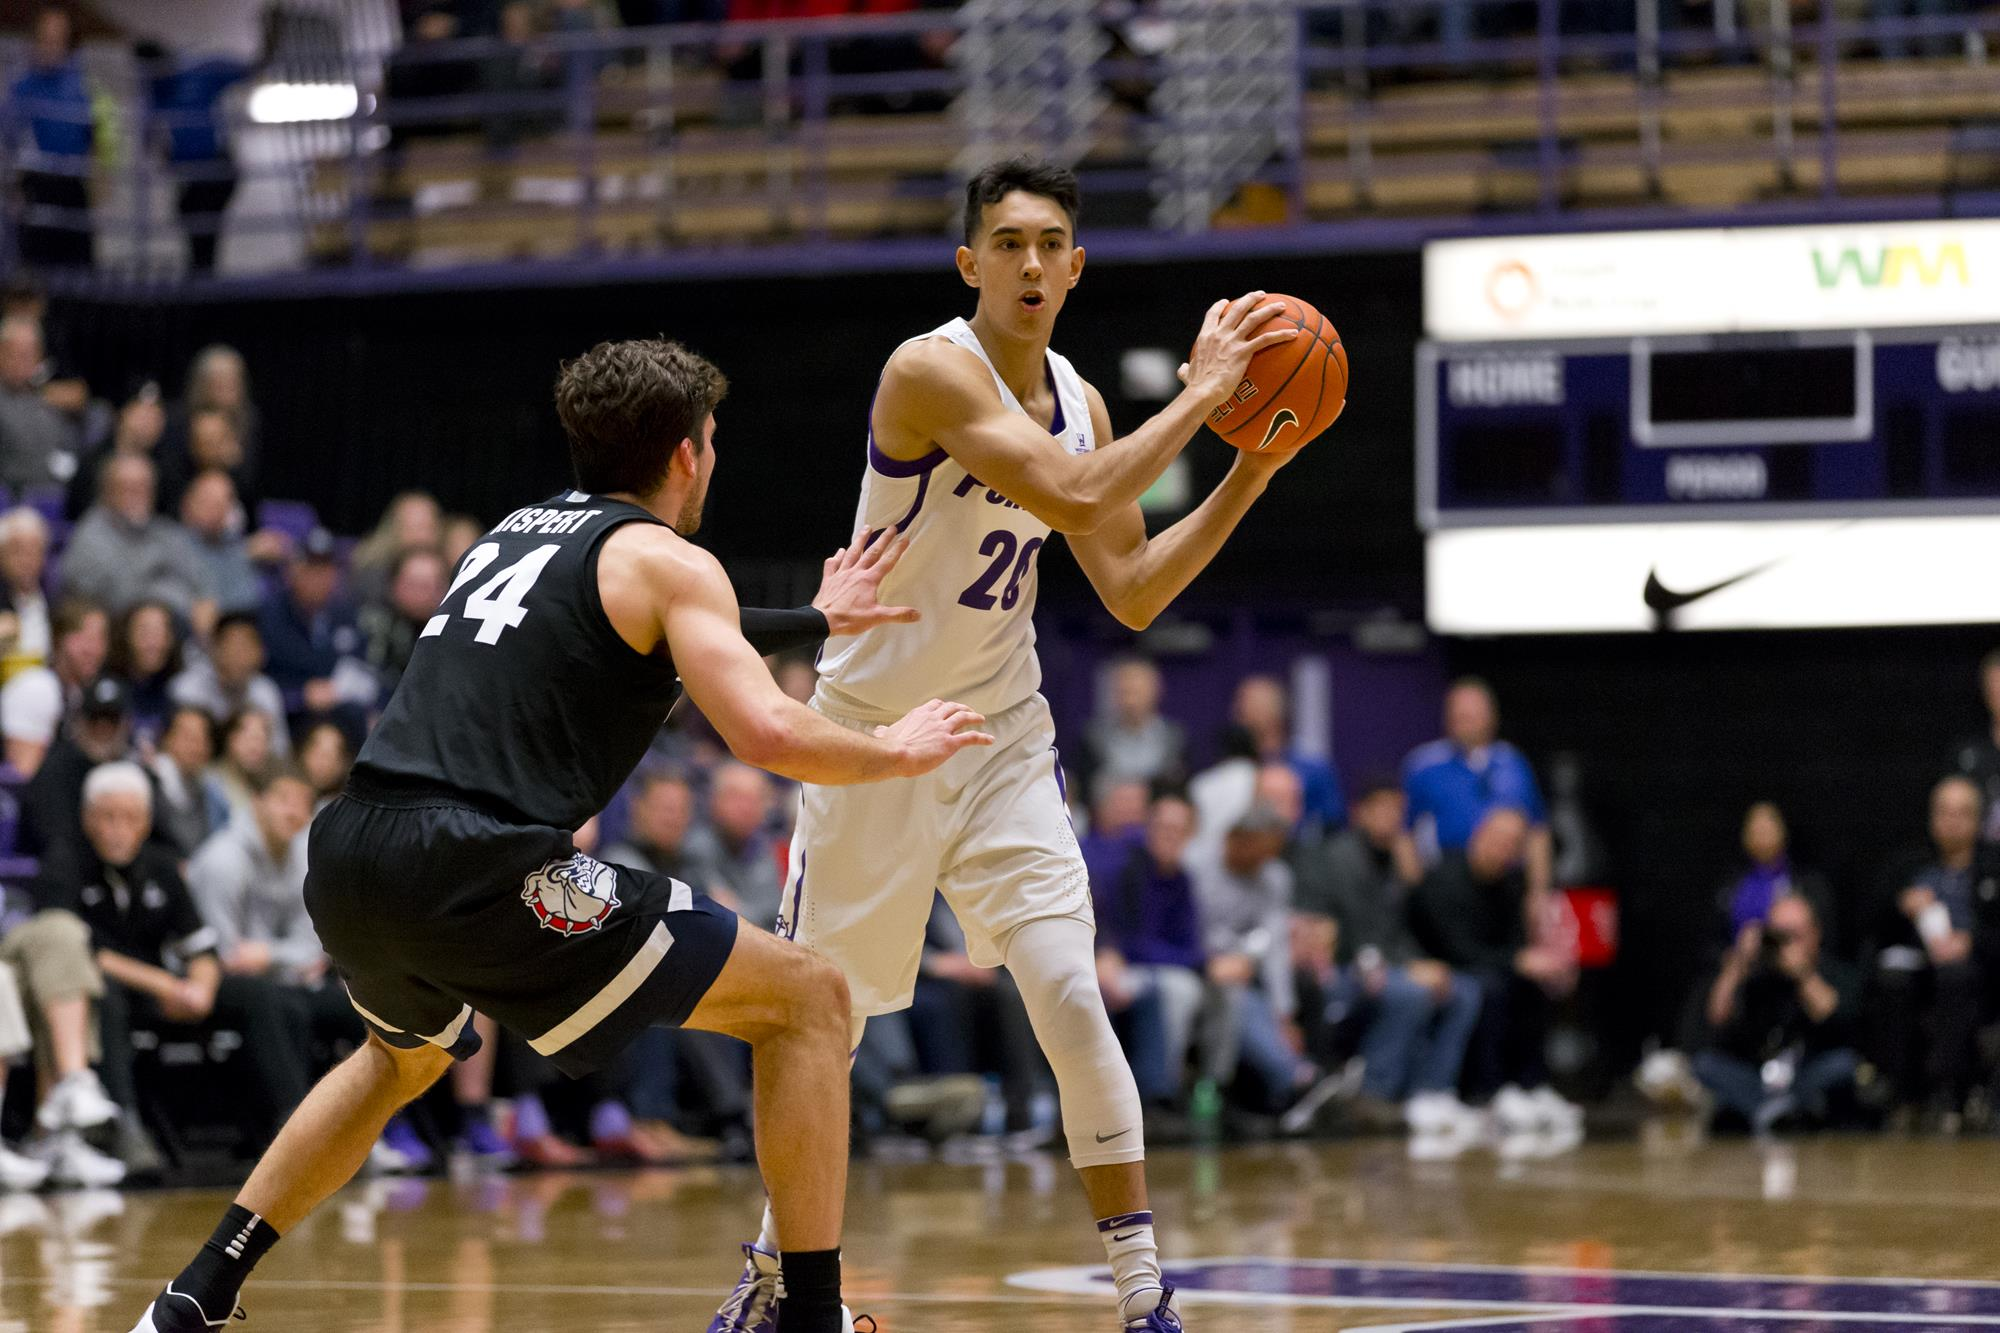 Pilots Look to Bounce Back Saturday at Pepperdine